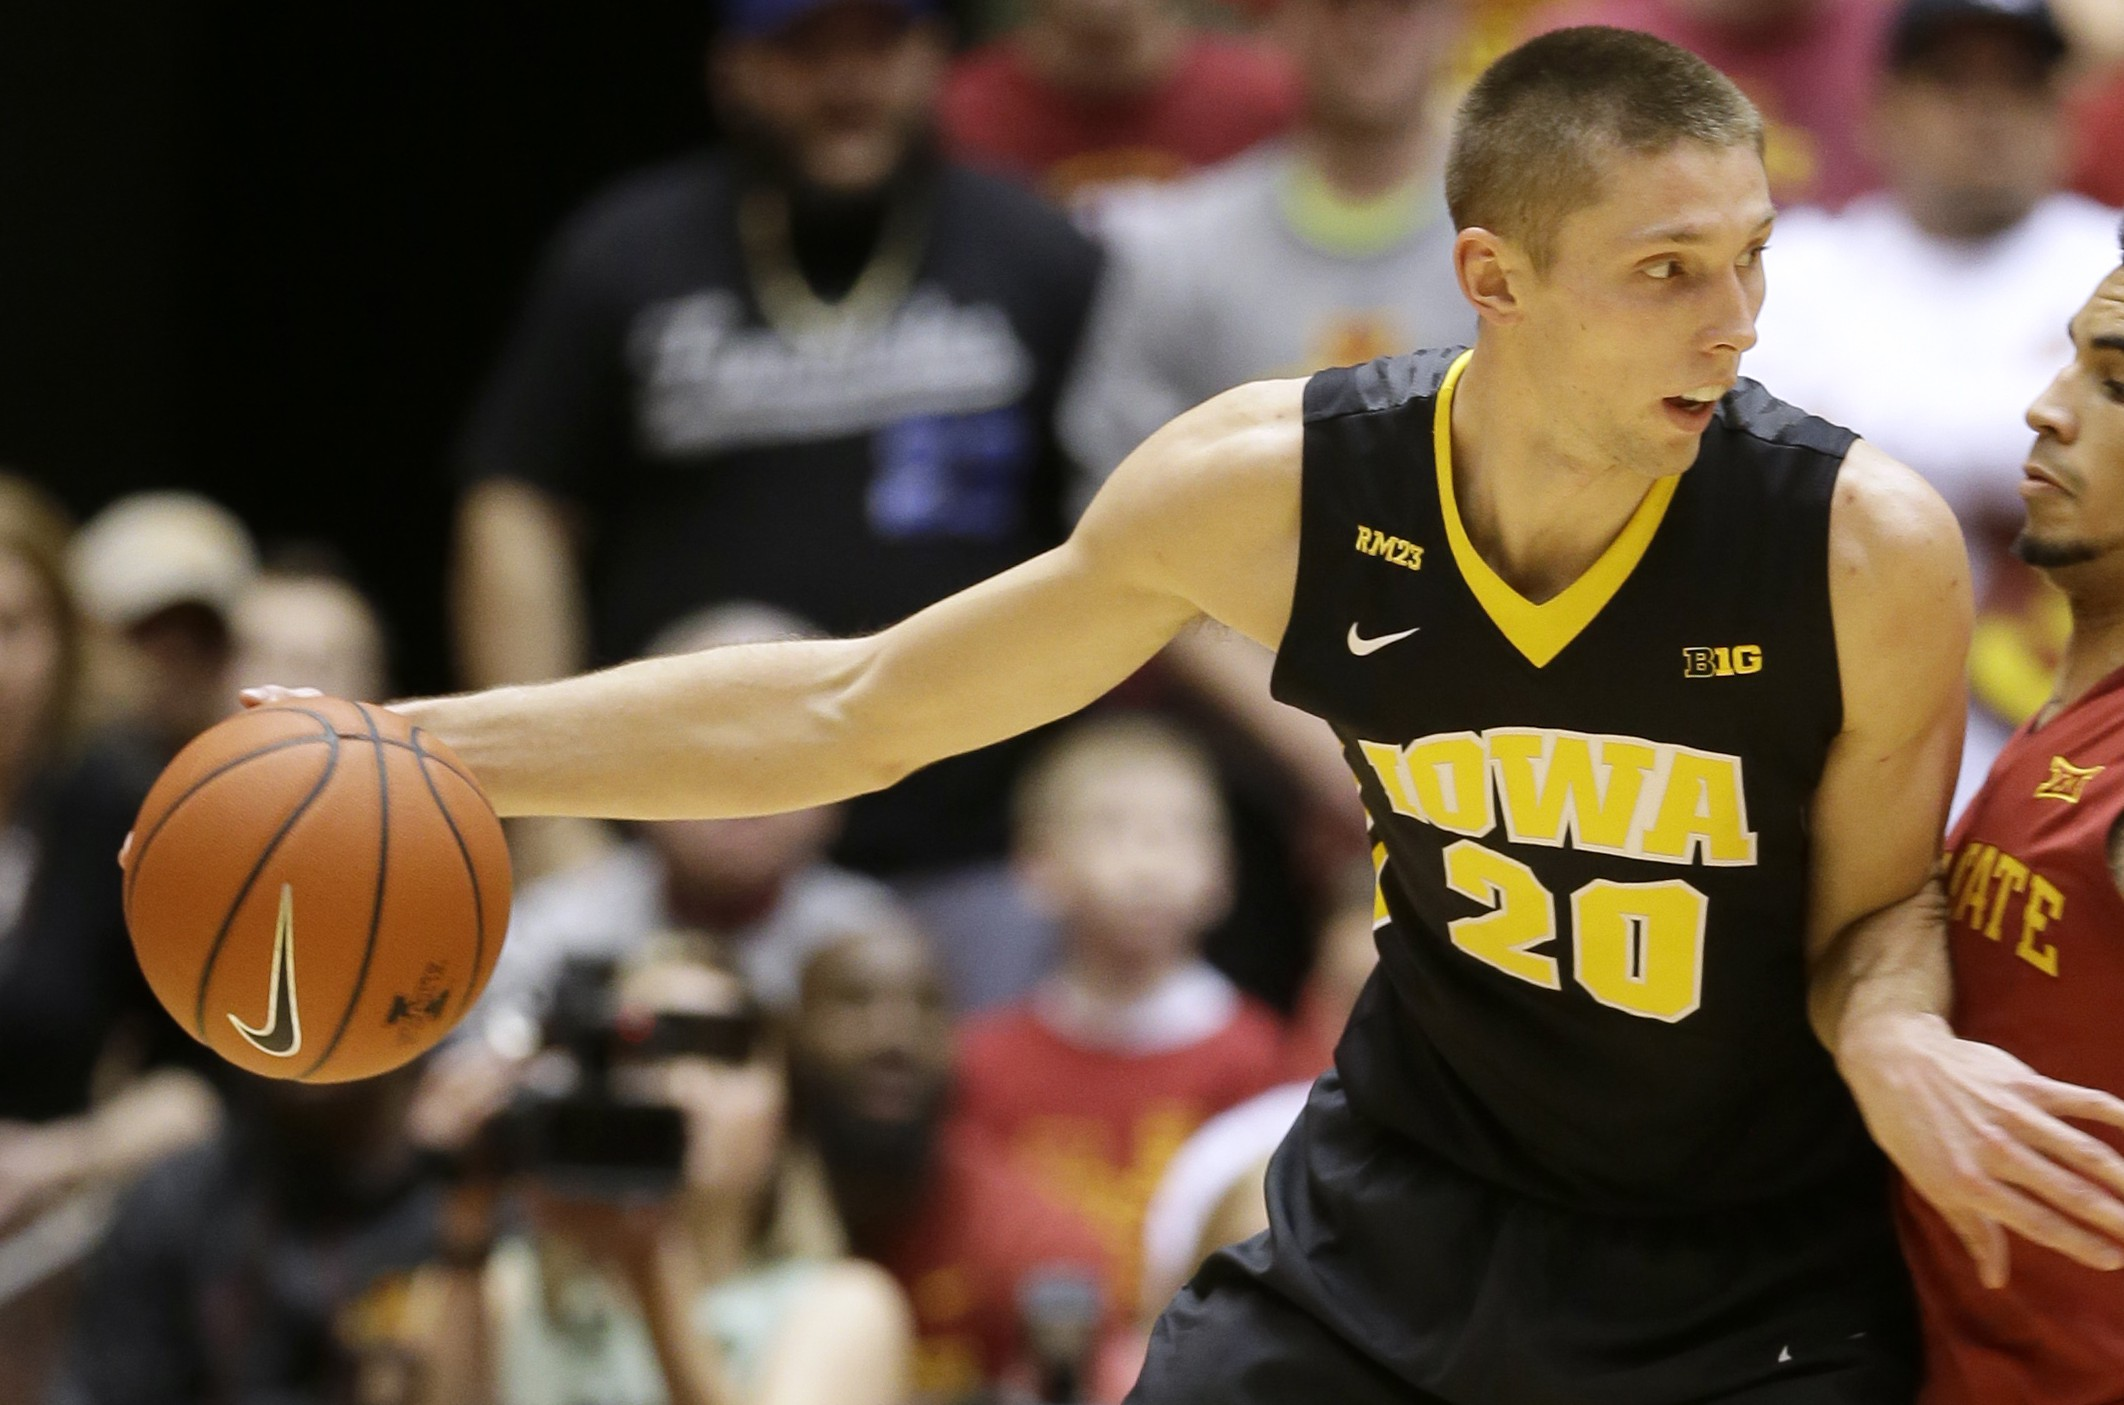 Iowa forward Jarrod Uthoff (AP Photo/Charlie Neibergall)